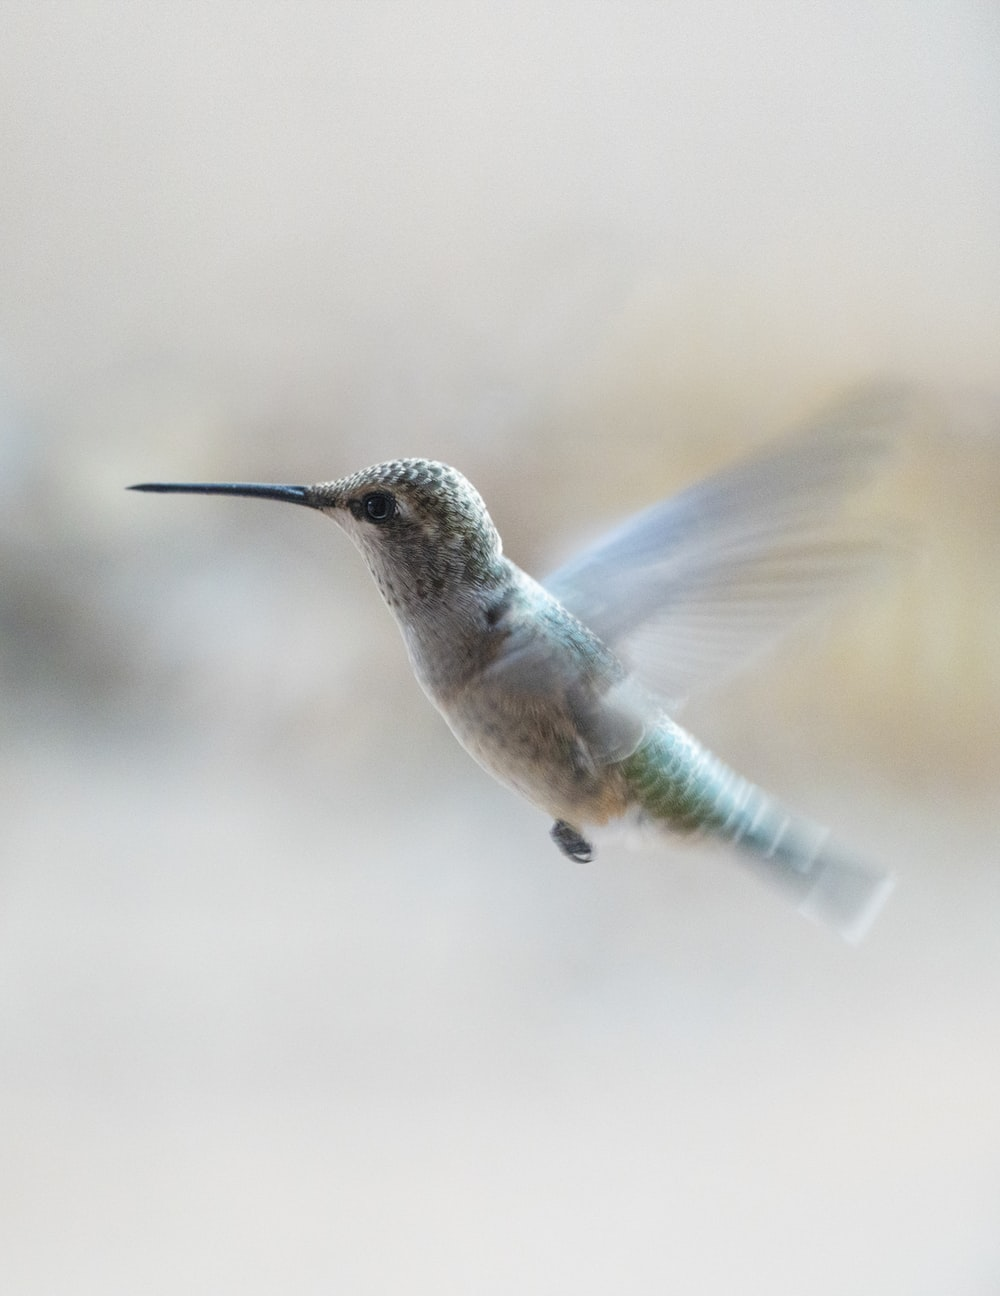 brown and black humming bird flying